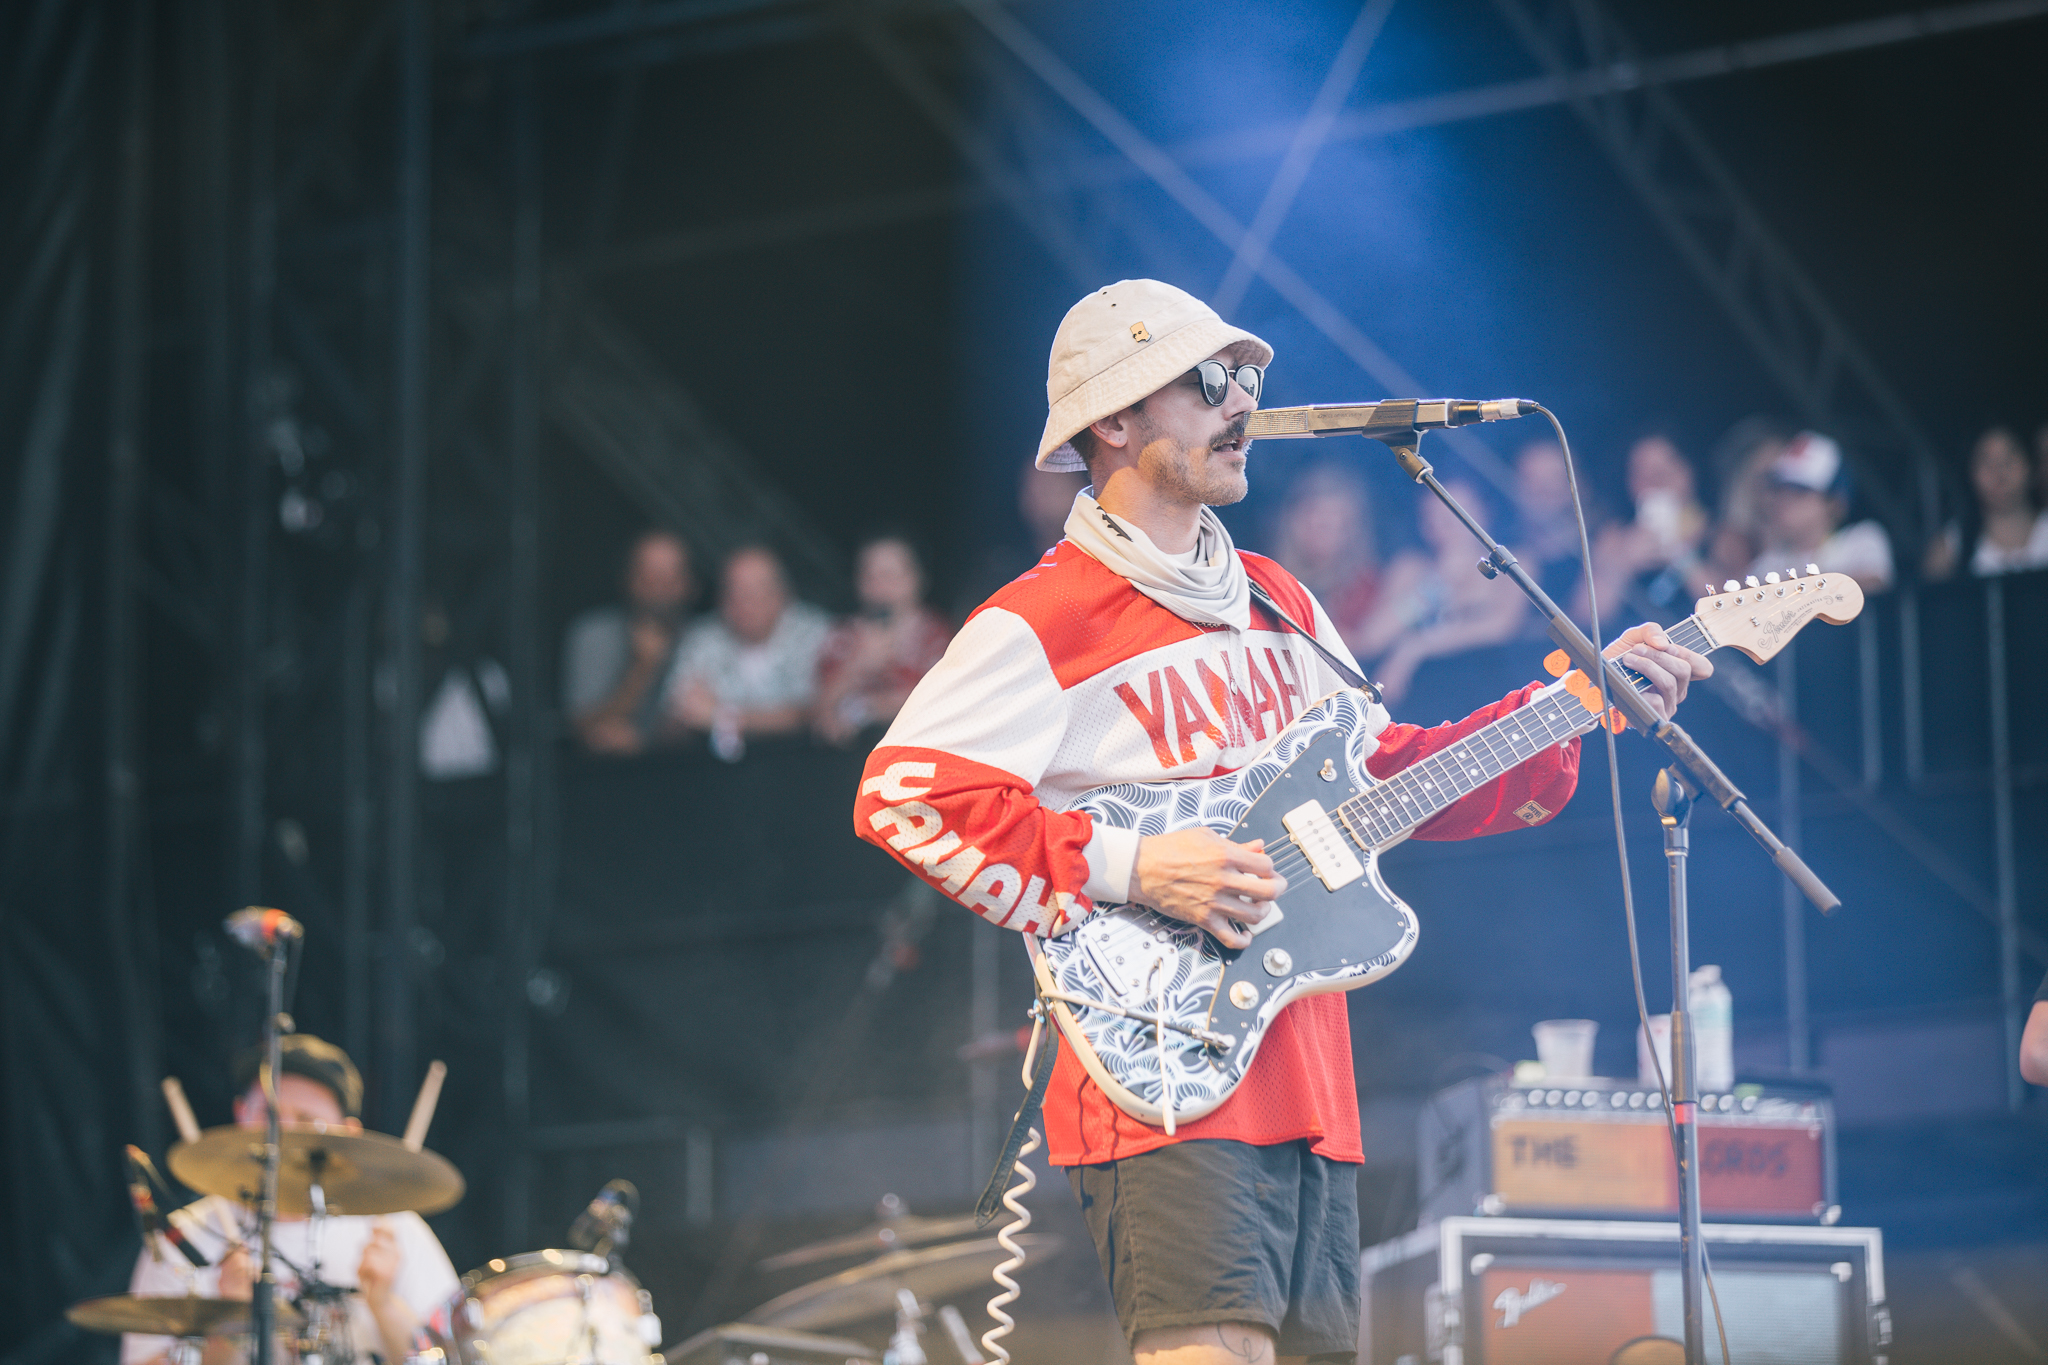 Laura Ord Photography | Austin, TX Concert Photography | Portugal. The Man at Hangout Music Fest in Gulf Shores, AL